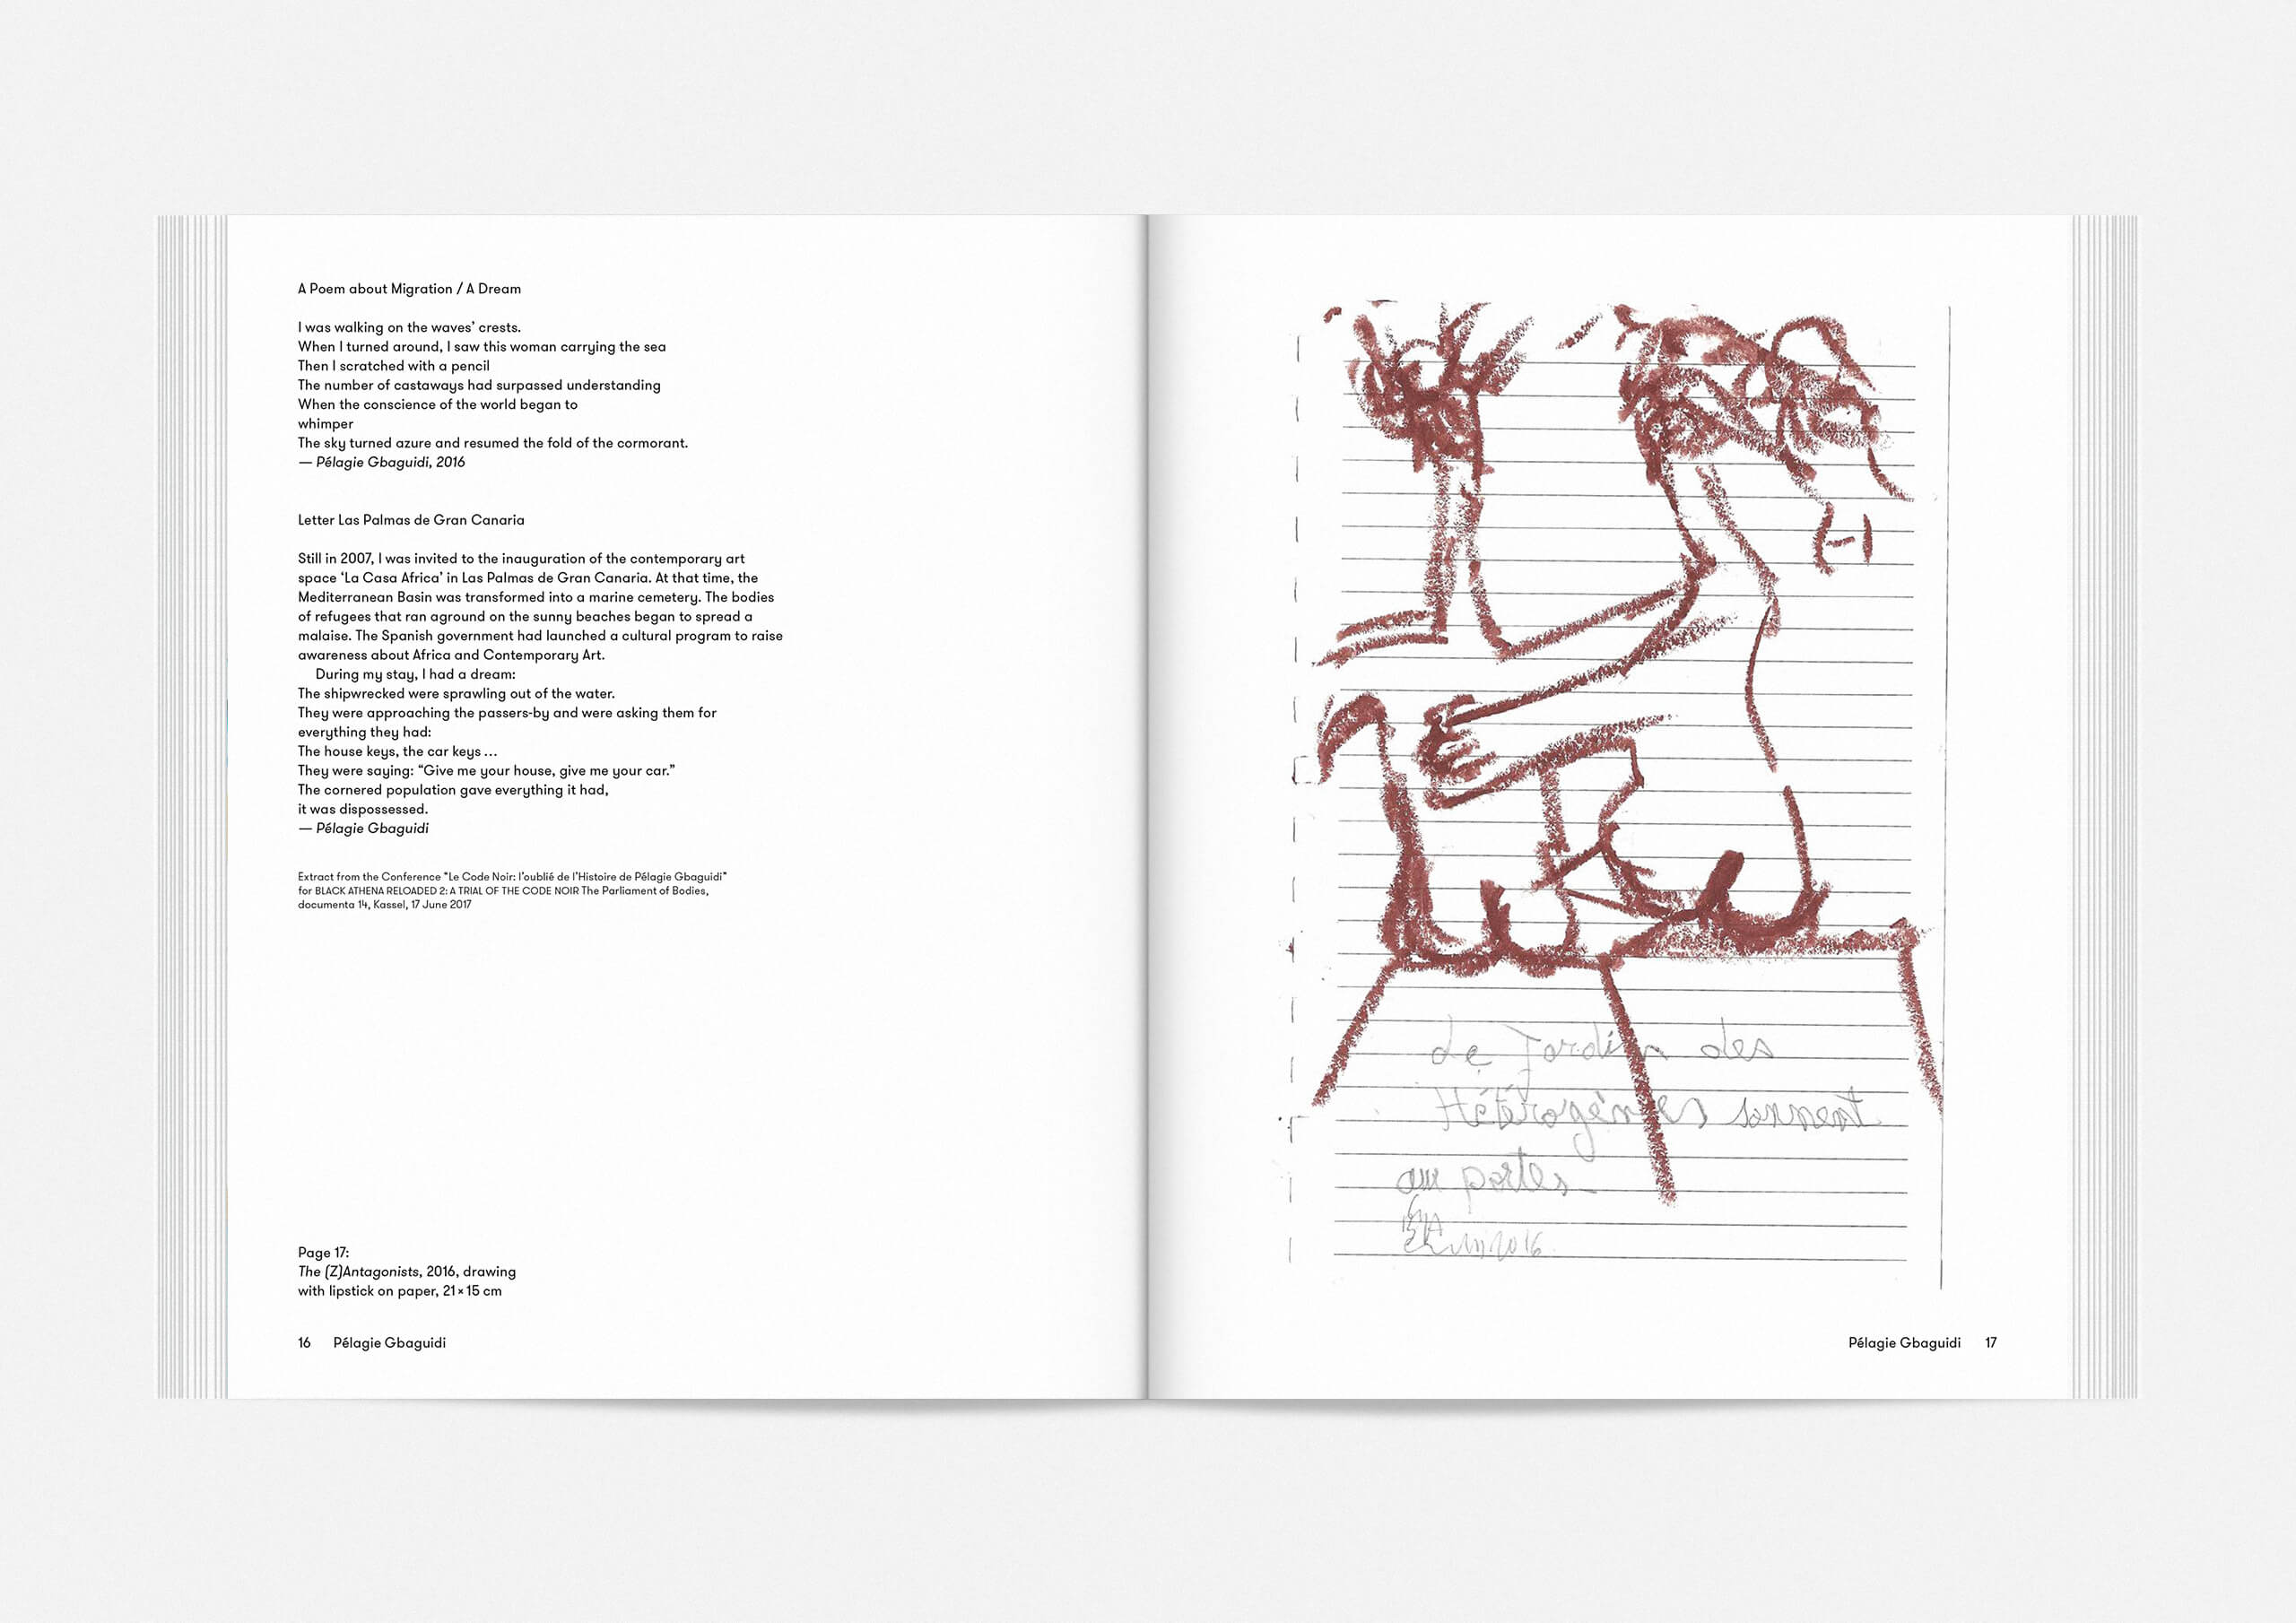 http://neuegestaltung.de/media/pages/clients/protocollum-issue-no-05/87700ed9f8-1597415139/protocollum-5-page-1617-ng.jpg